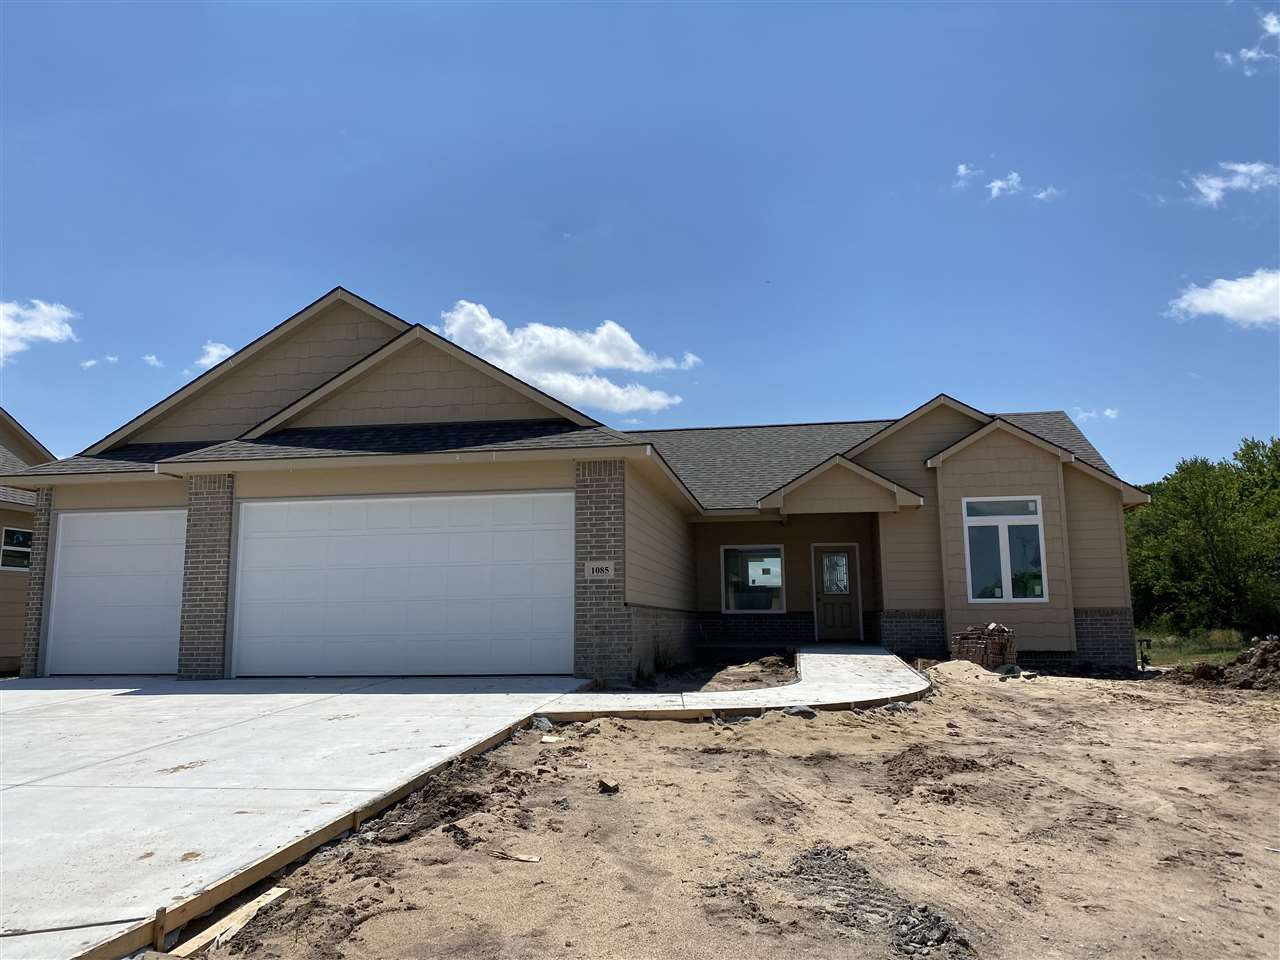 Vision Custom Homes brings the Award Winning Topaz Design to Arbor Creek! Are you looking for Zero E